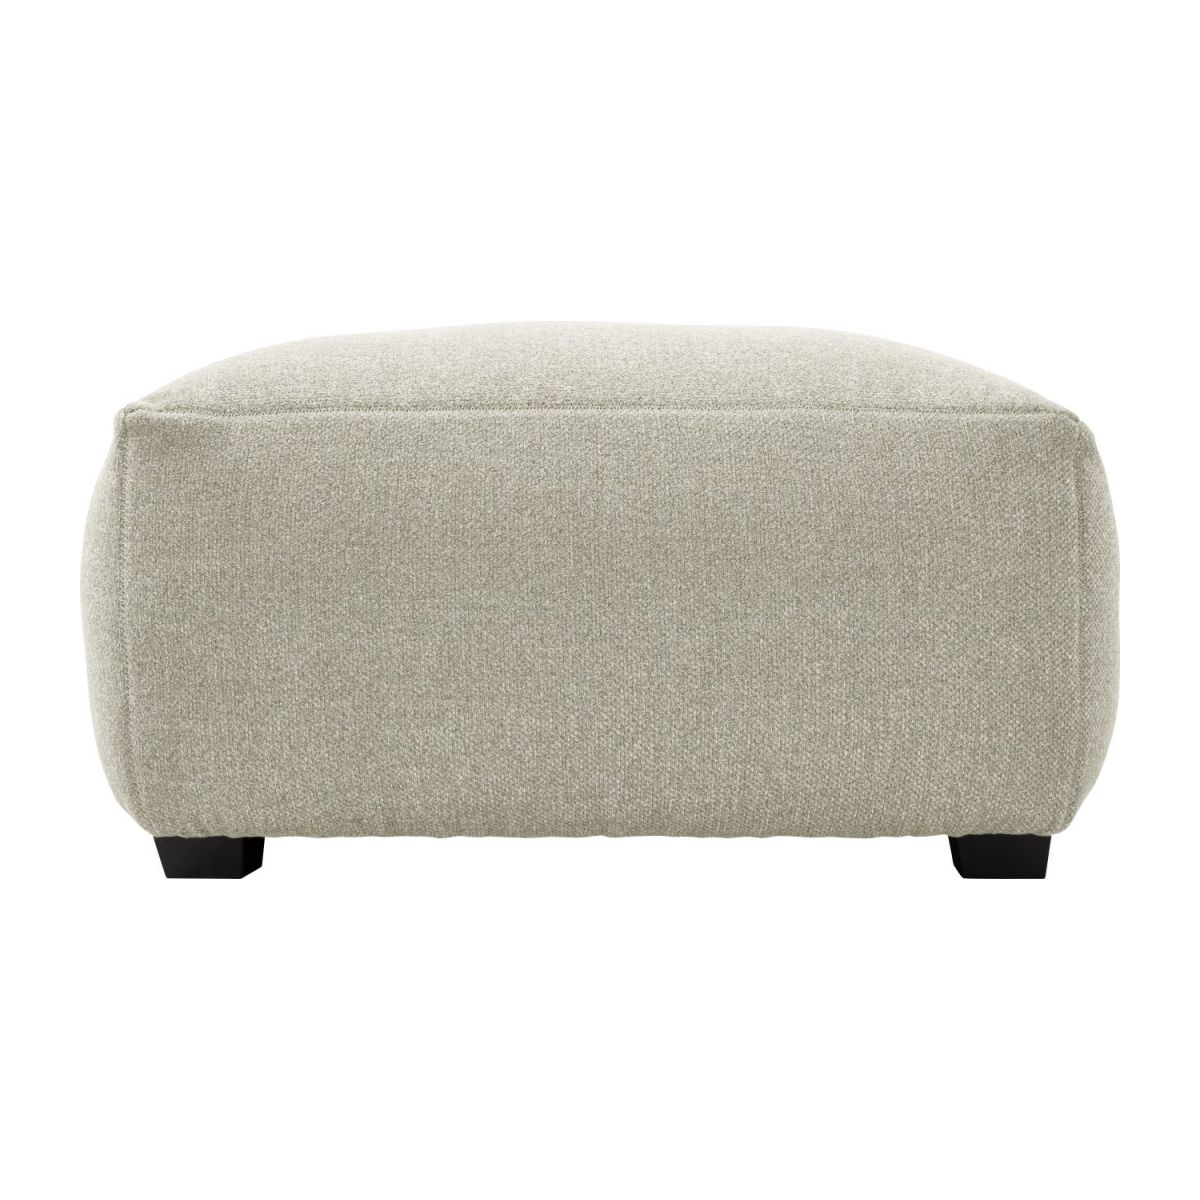 Footstool in Lecce fabric, nature n°4